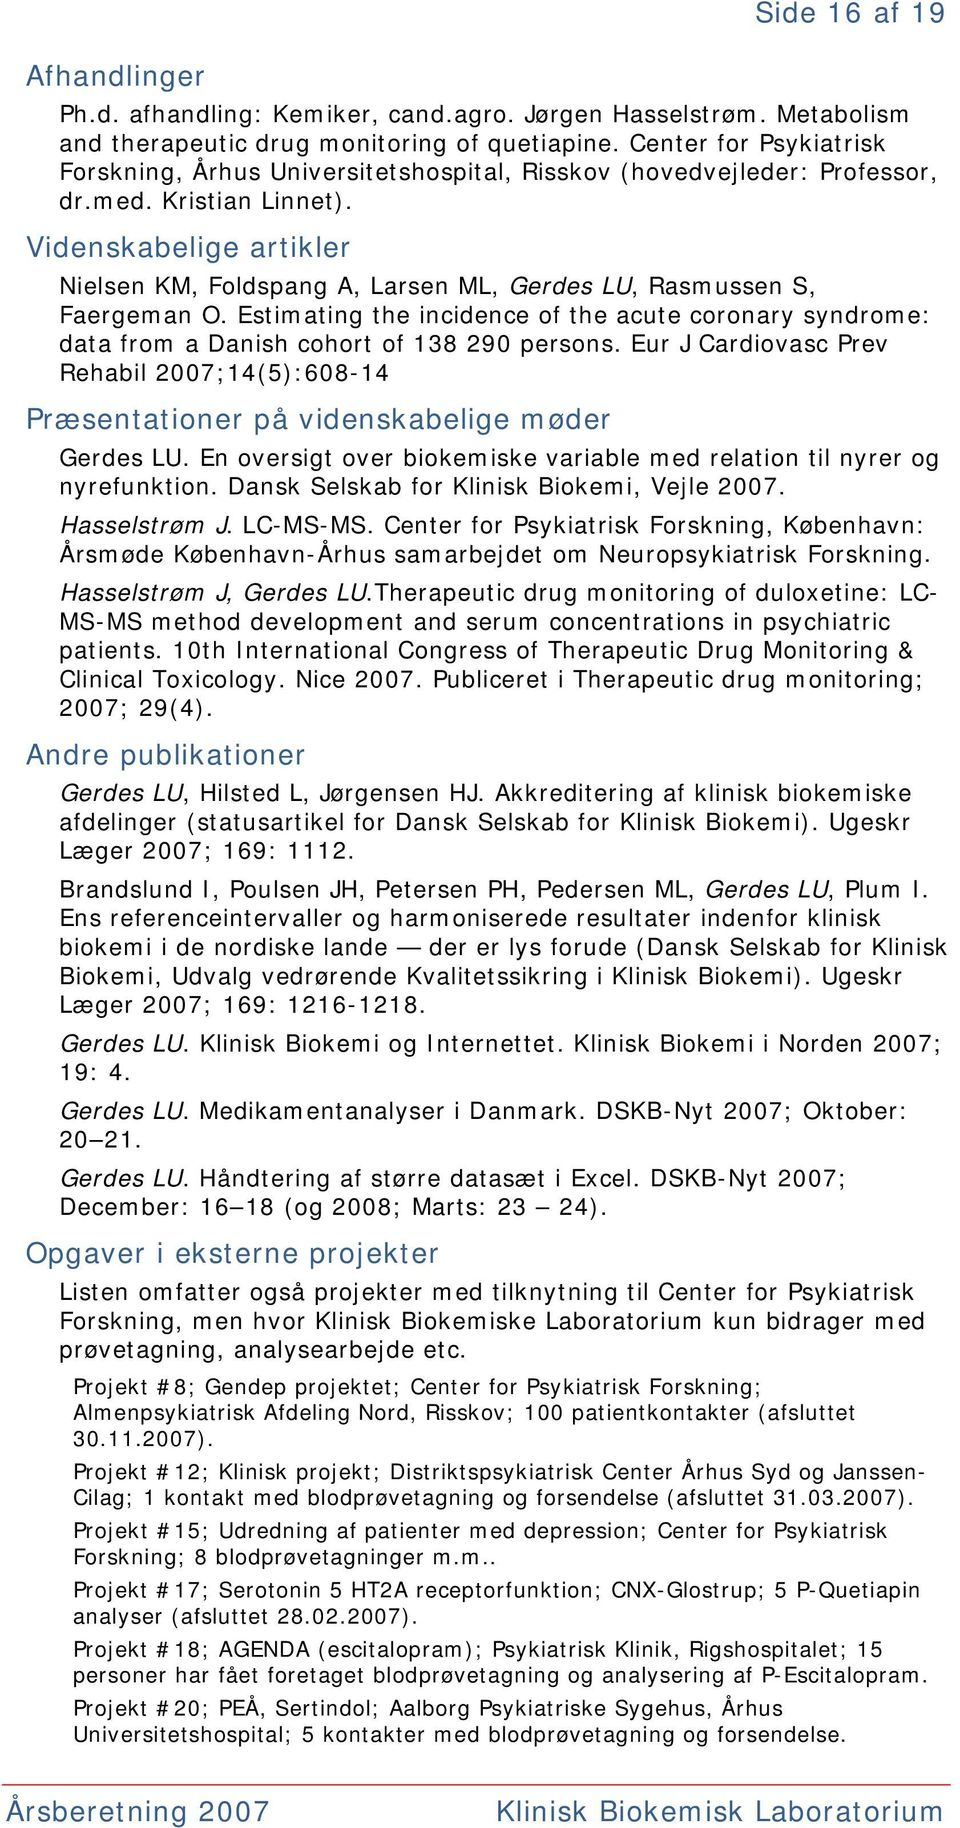 Videnskabelige artikler Nielsen KM, Foldspang A, Larsen ML, Gerdes LU, Rasmussen S, Faergeman O. Estimating the incidence of the acute coronary syndrome: data from a Danish cohort of 138 290 persons.